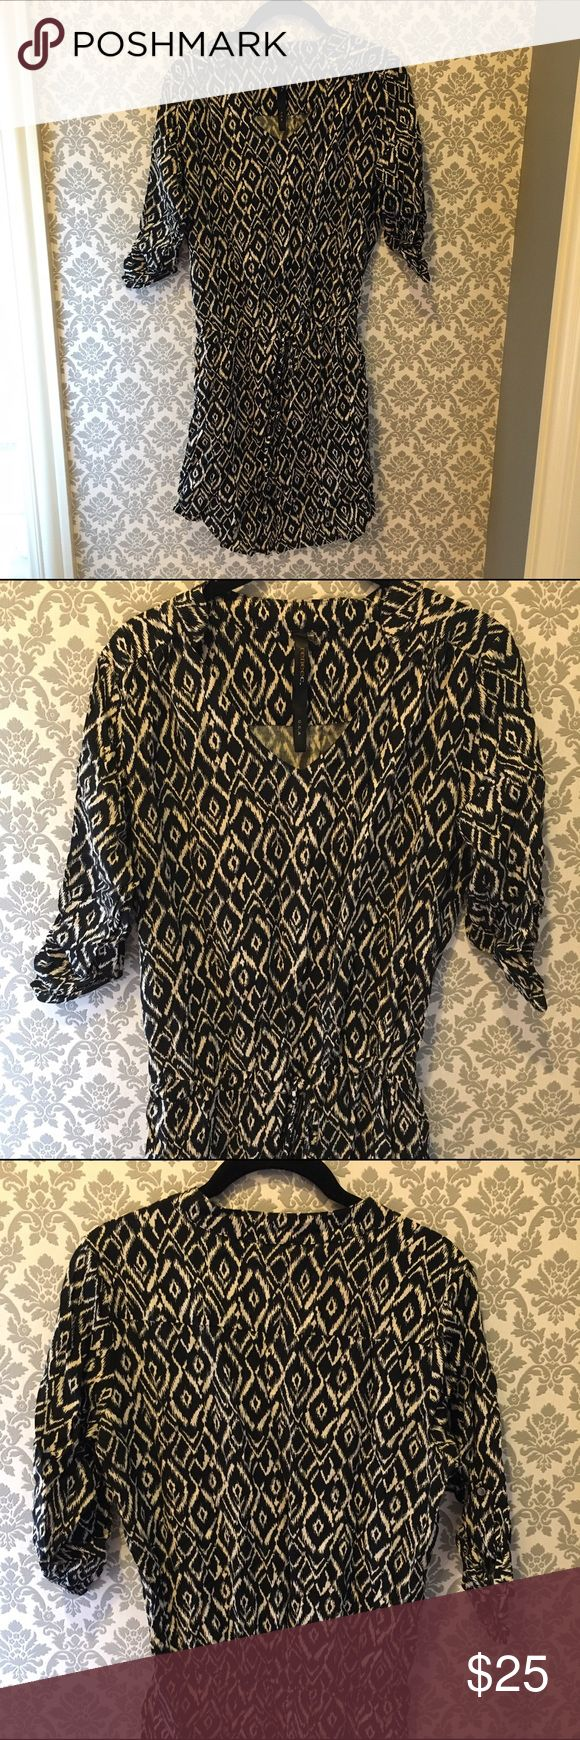 Drawstring waist, v-neck dress Drawstring waist, v-neck dress. Like new; worn once. Size is small but could fit medium as well. Dresses